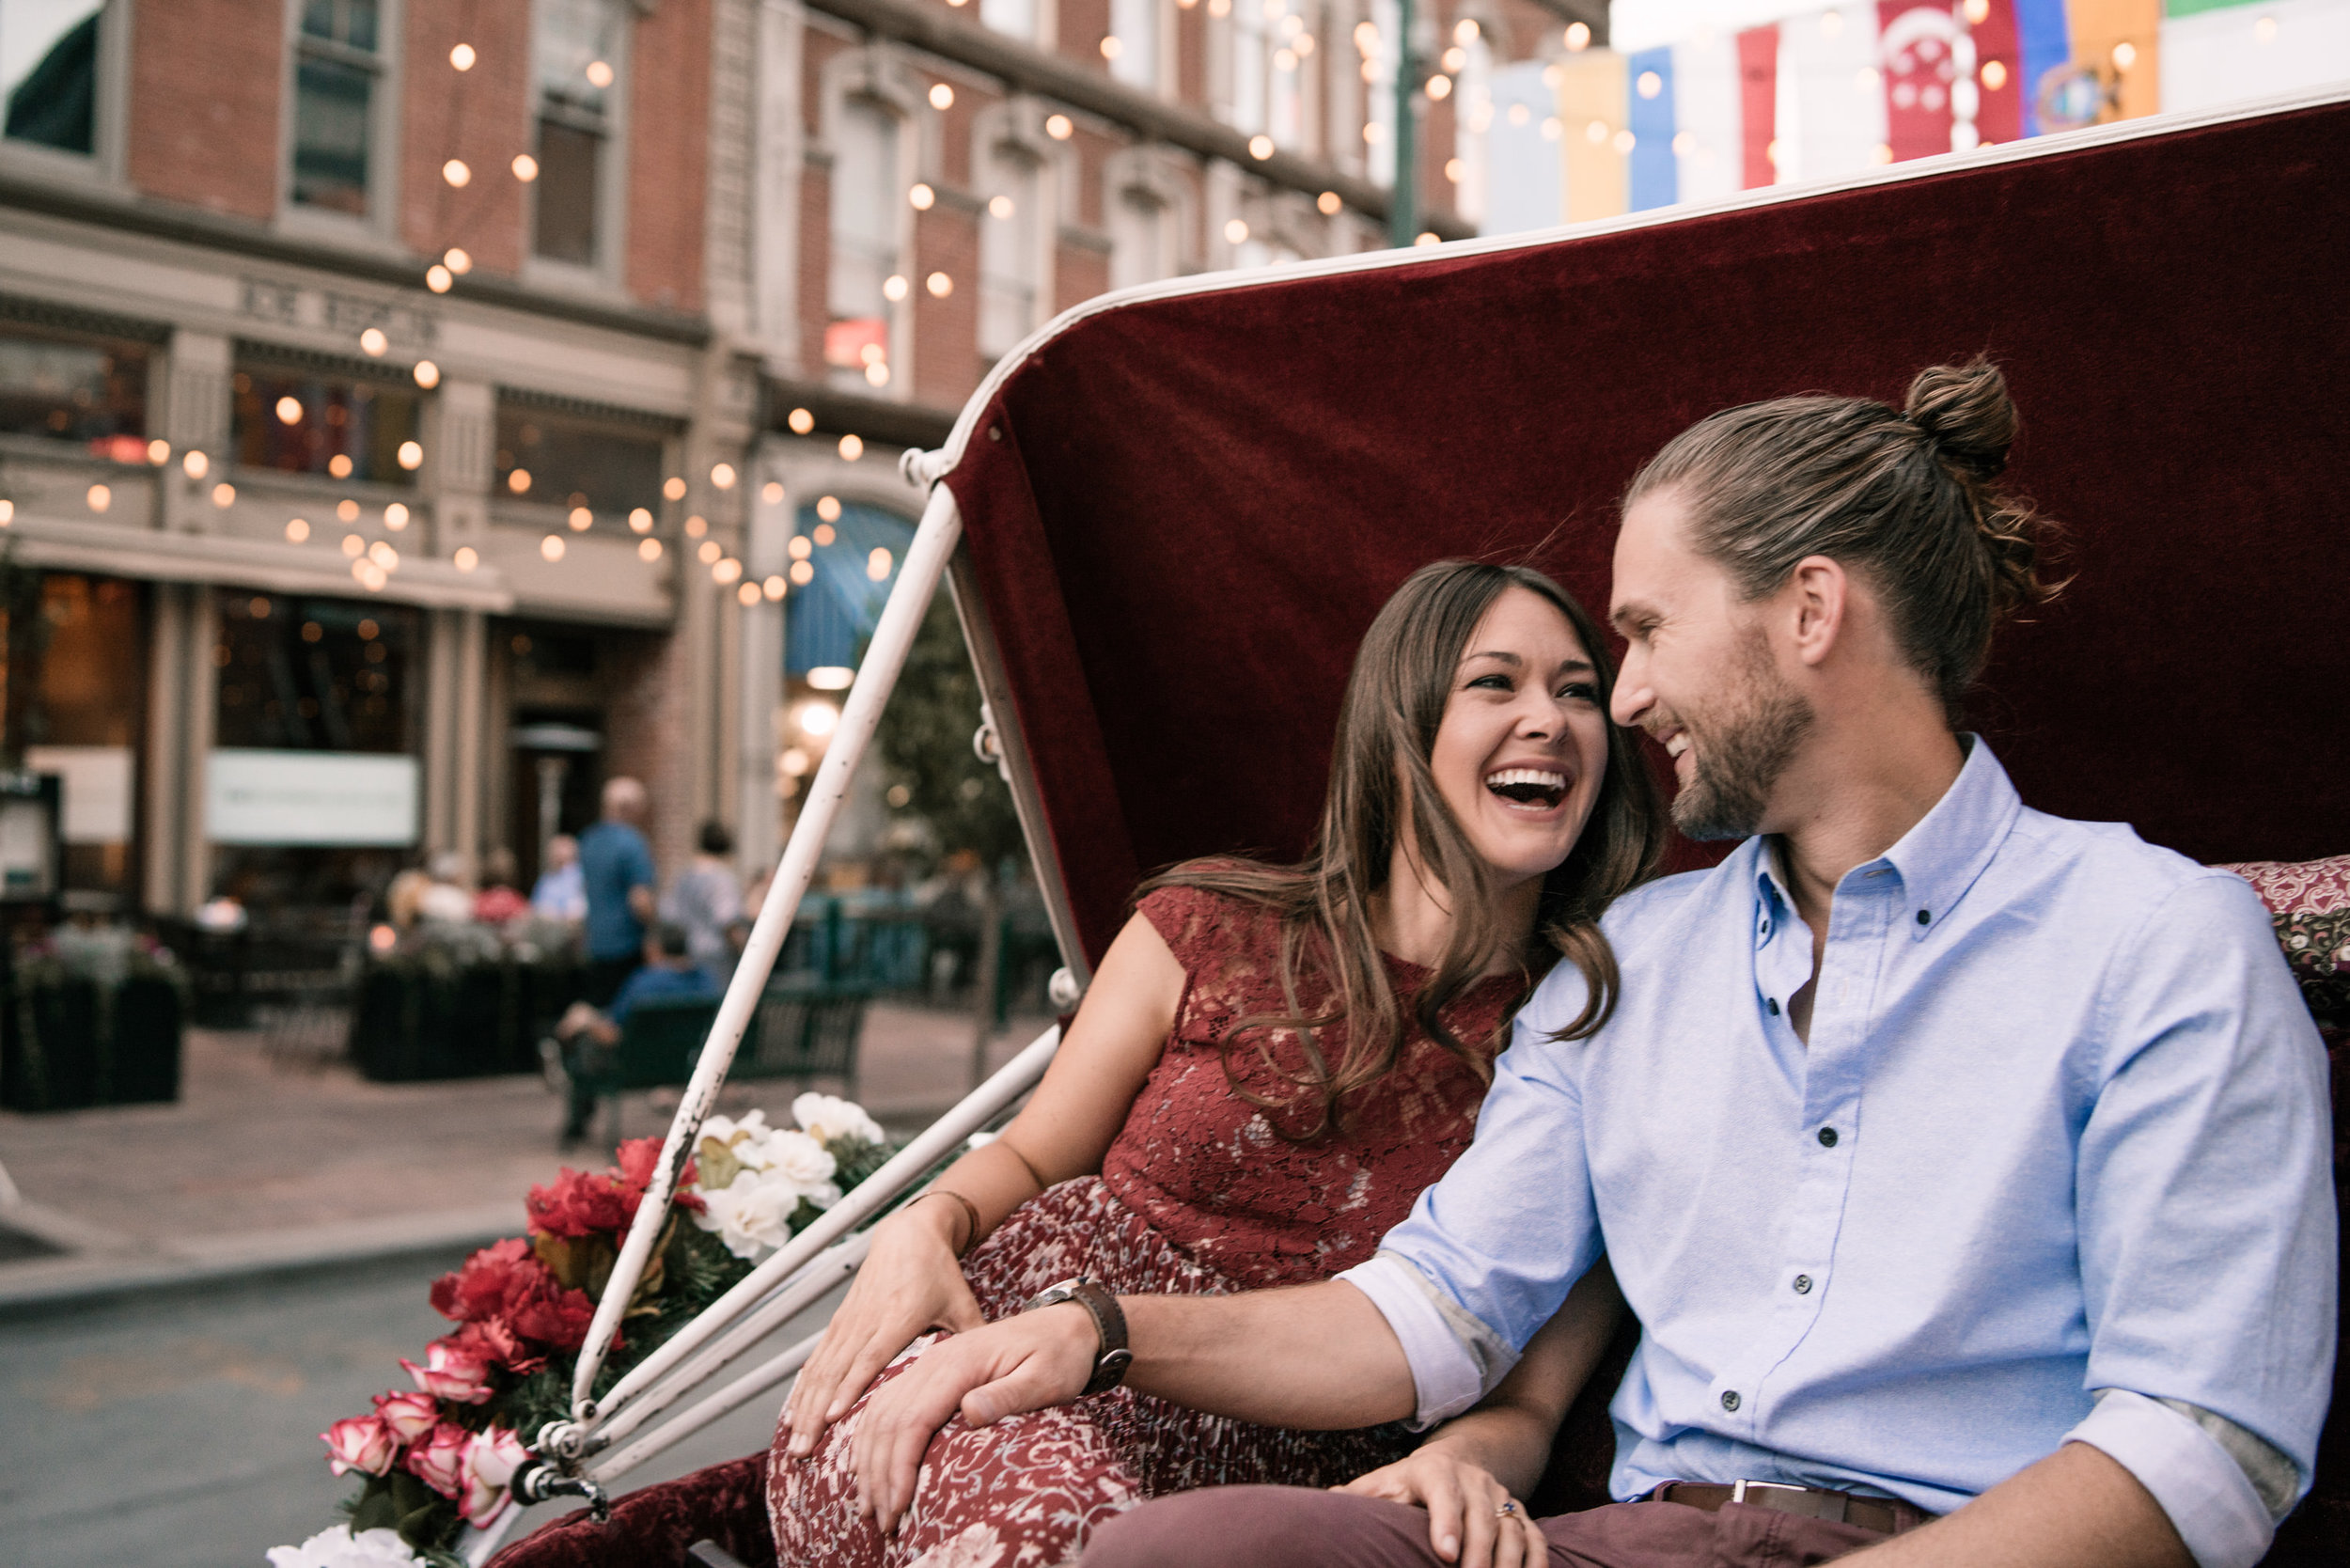 nat-anna-horse-carriage-union-station-downtown-engagement-session-04310.jpg